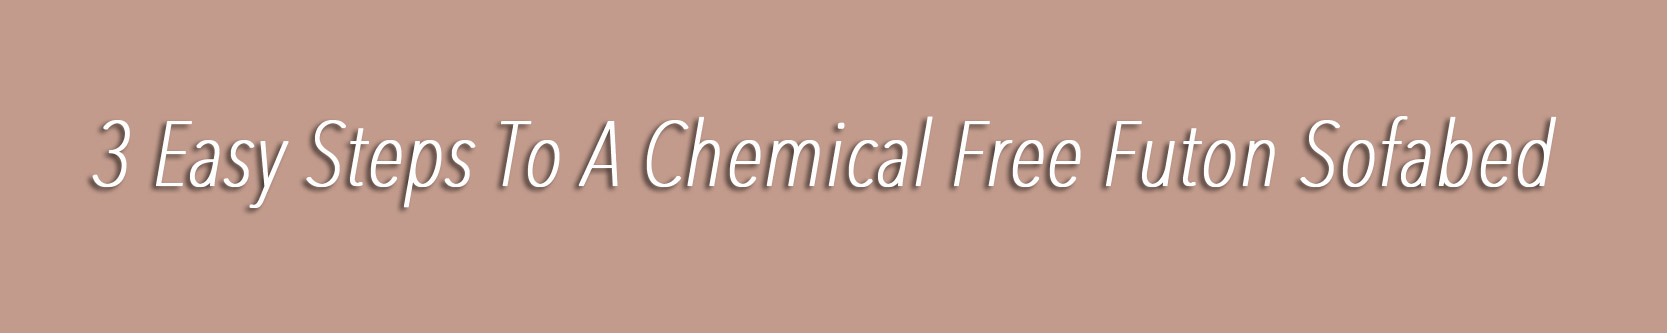 Chemical free lifestyle